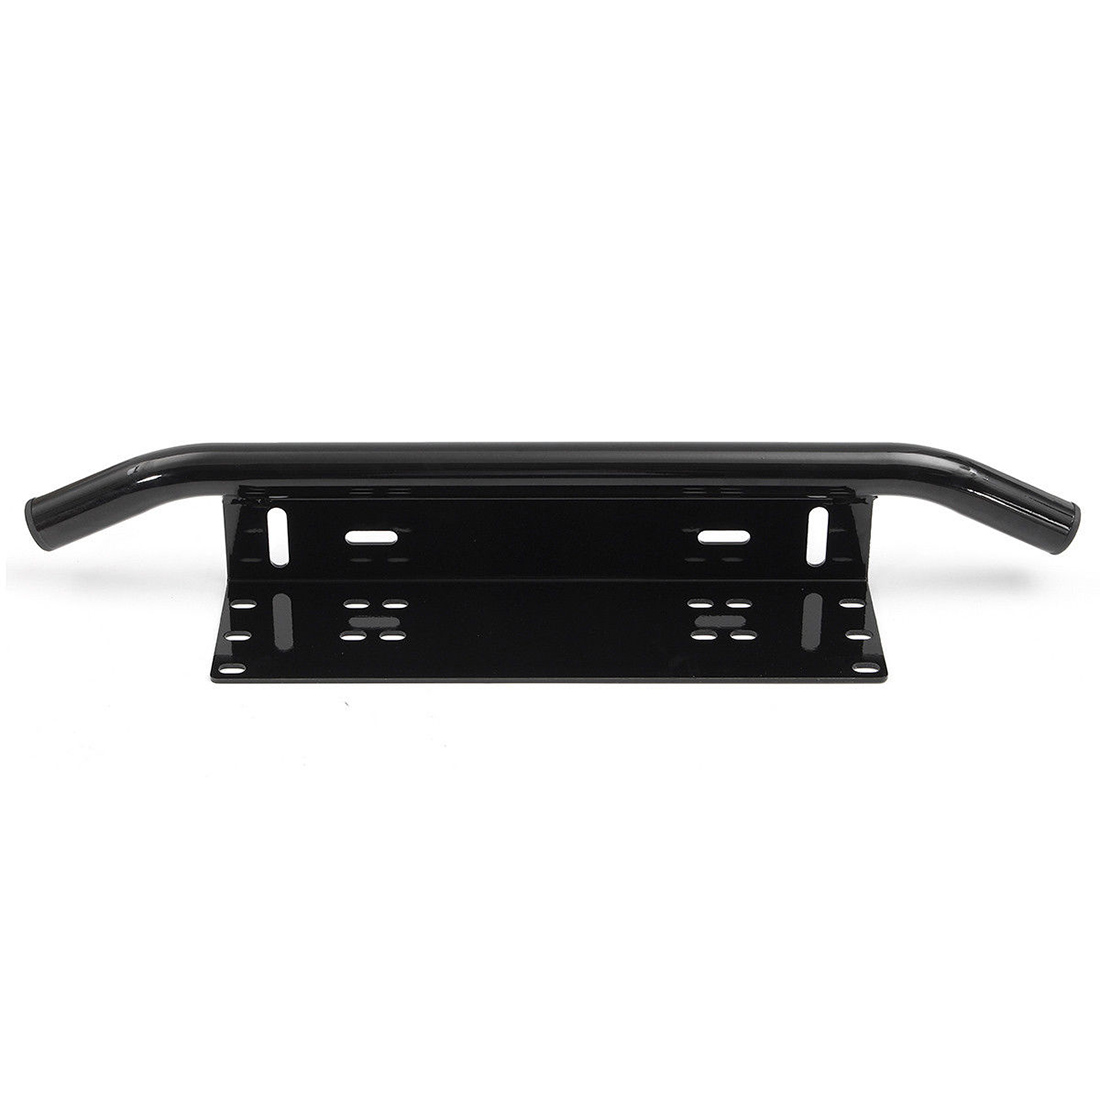 58.4cm Front Bumper License Plate Mount Bracket Holder Bar For Fog Working Lamp